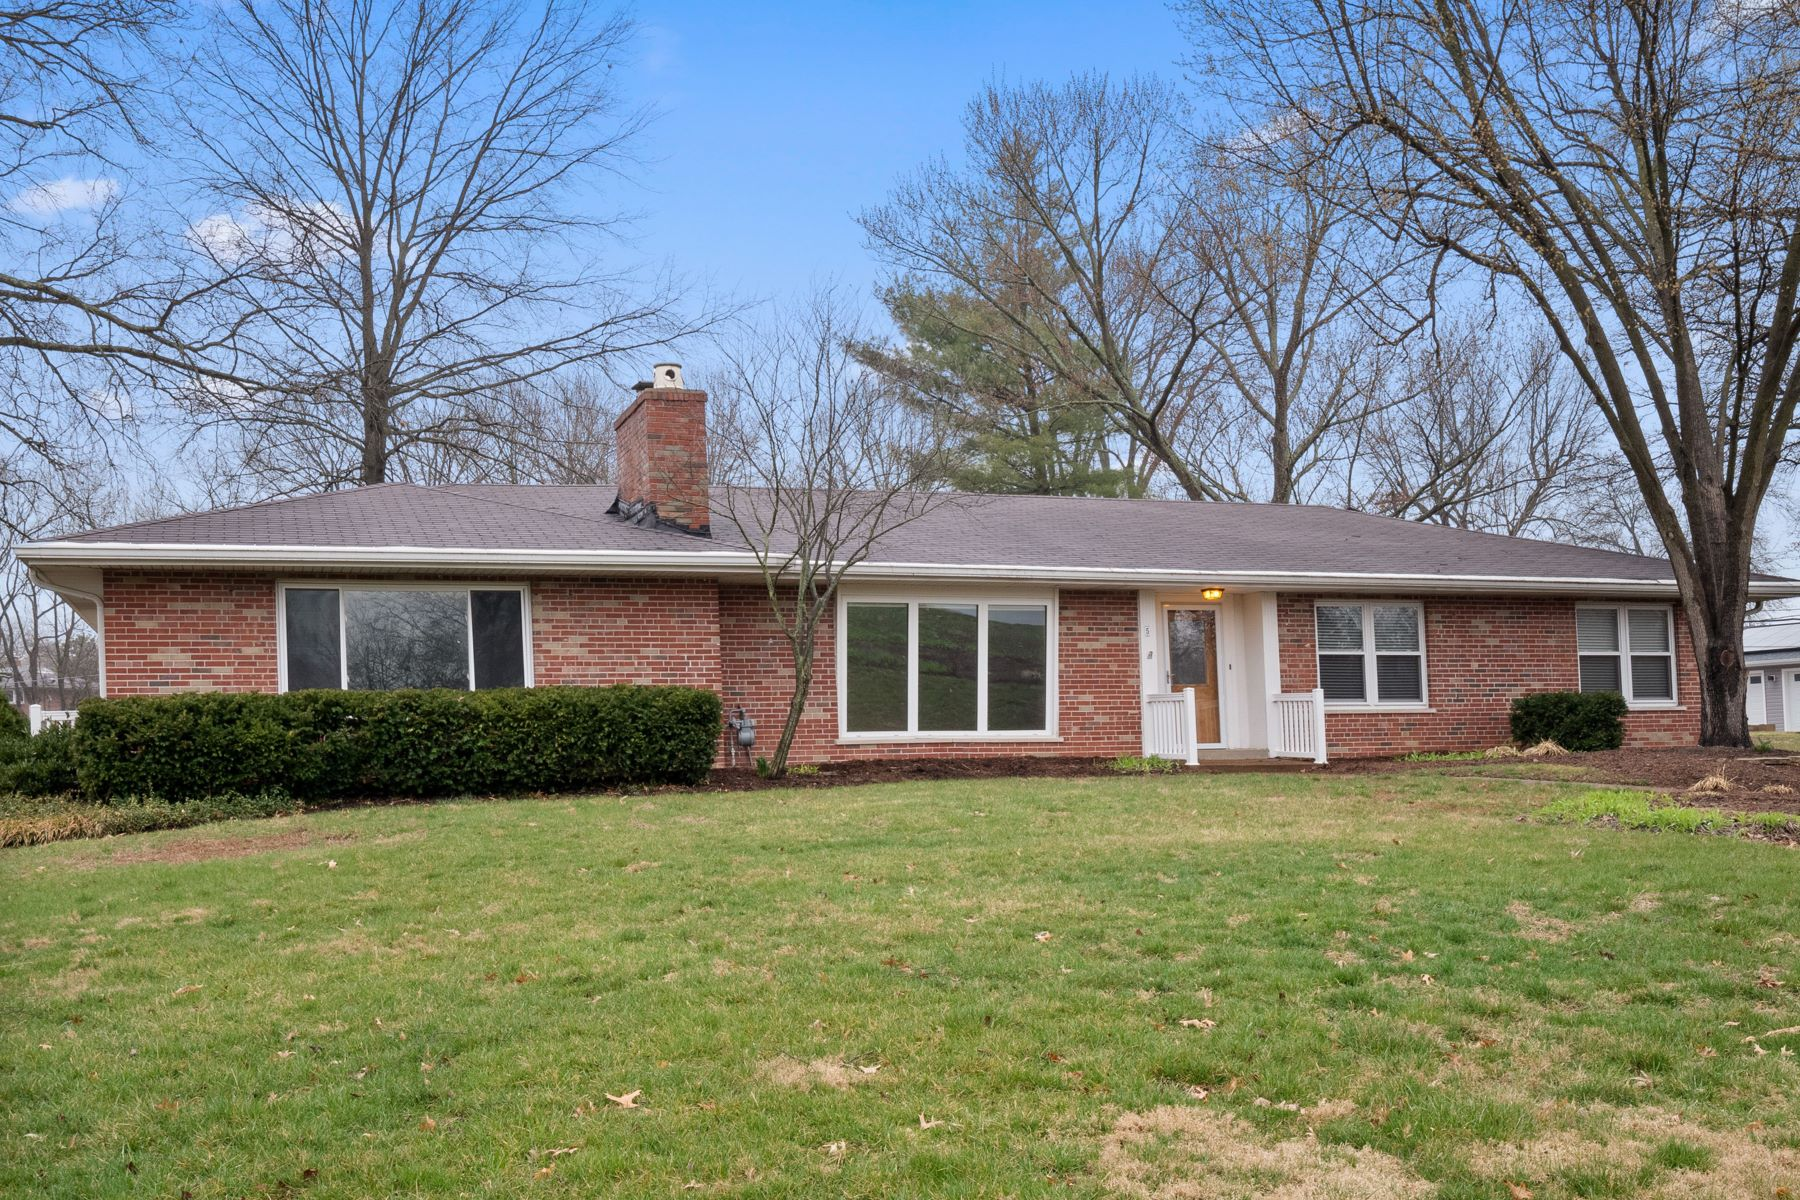 Single Family Homes for Sale at Ranch Brick Home in Desirable Lindbergh School District 5 Meppen Court Sunset Hills, Missouri 63128 United States